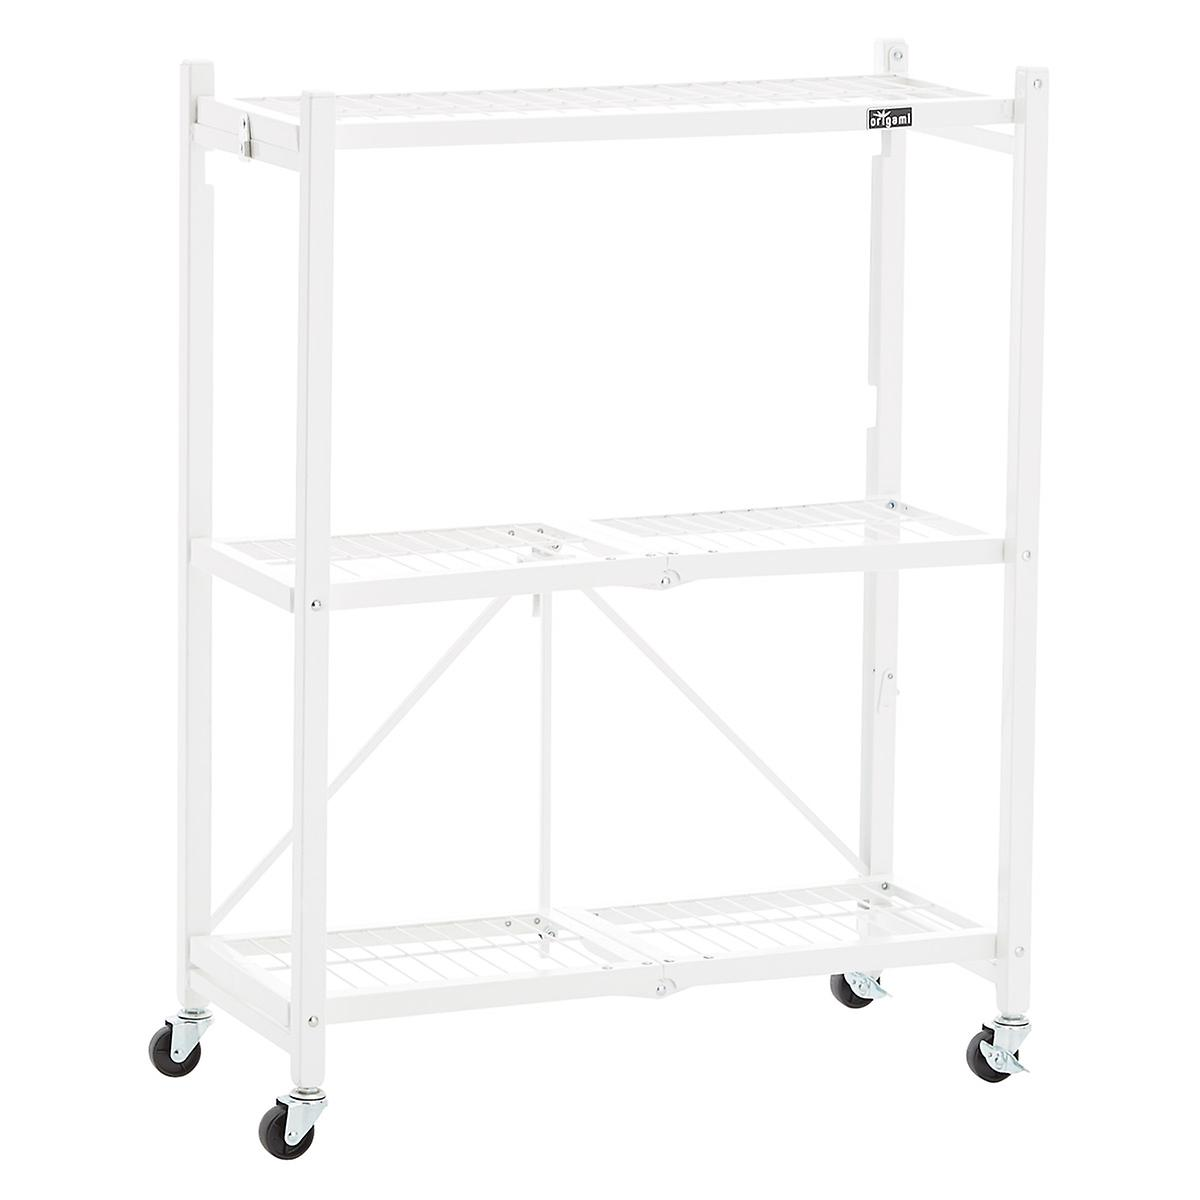 Origami 3 shelf folding rack the container store origami 3 shelf folding rack jeuxipadfo Choice Image